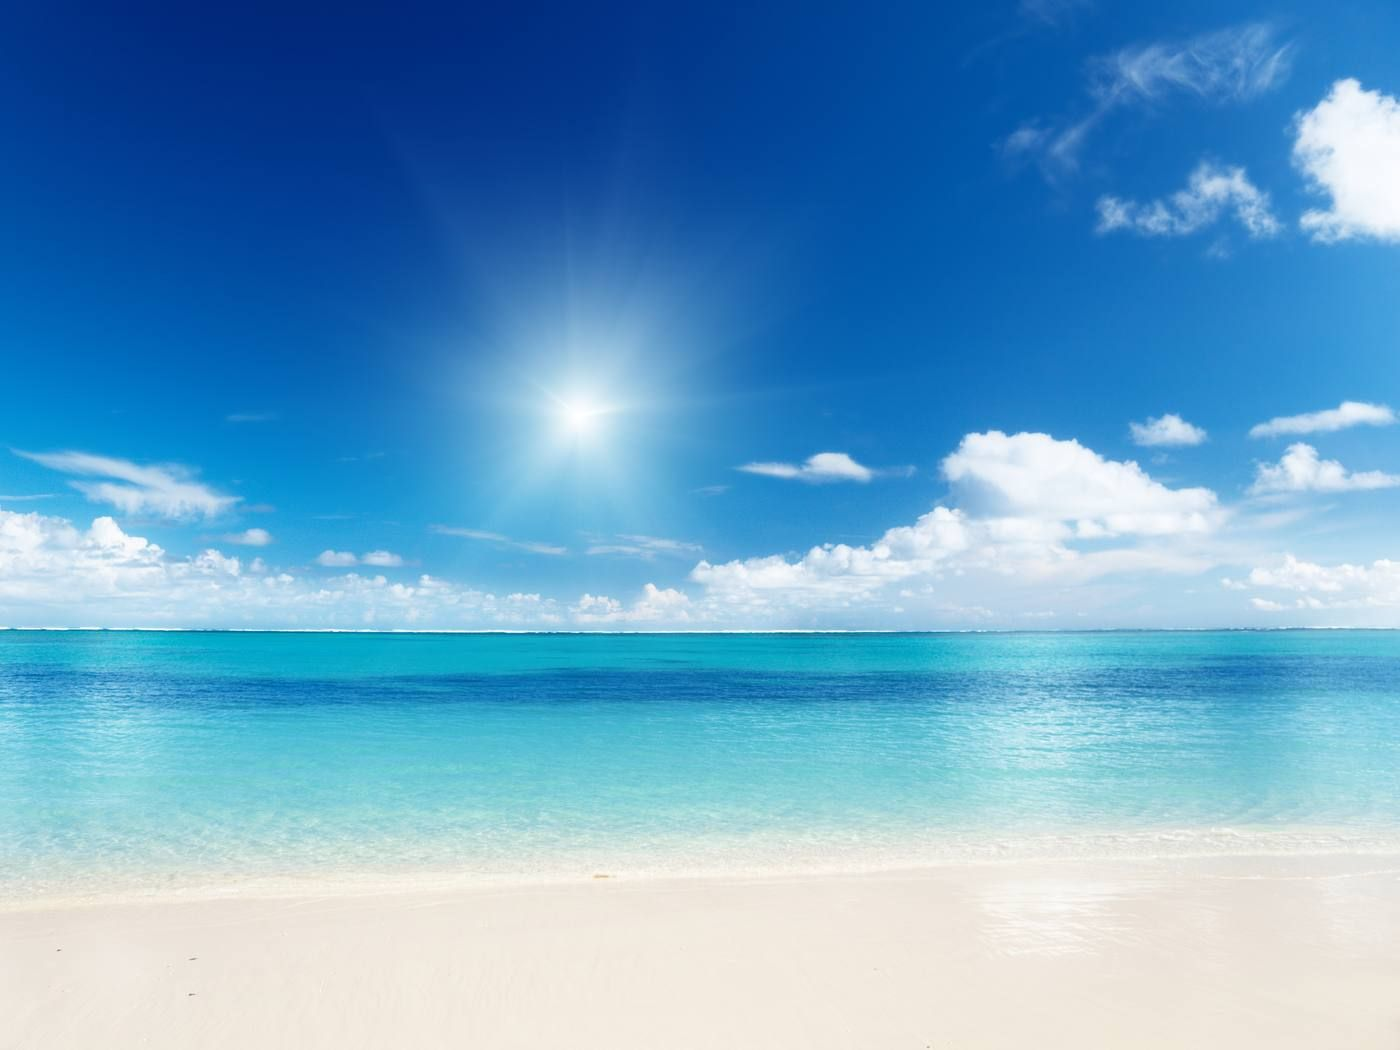 pictures of the caribbean beaches | caribbean beach wallpaper